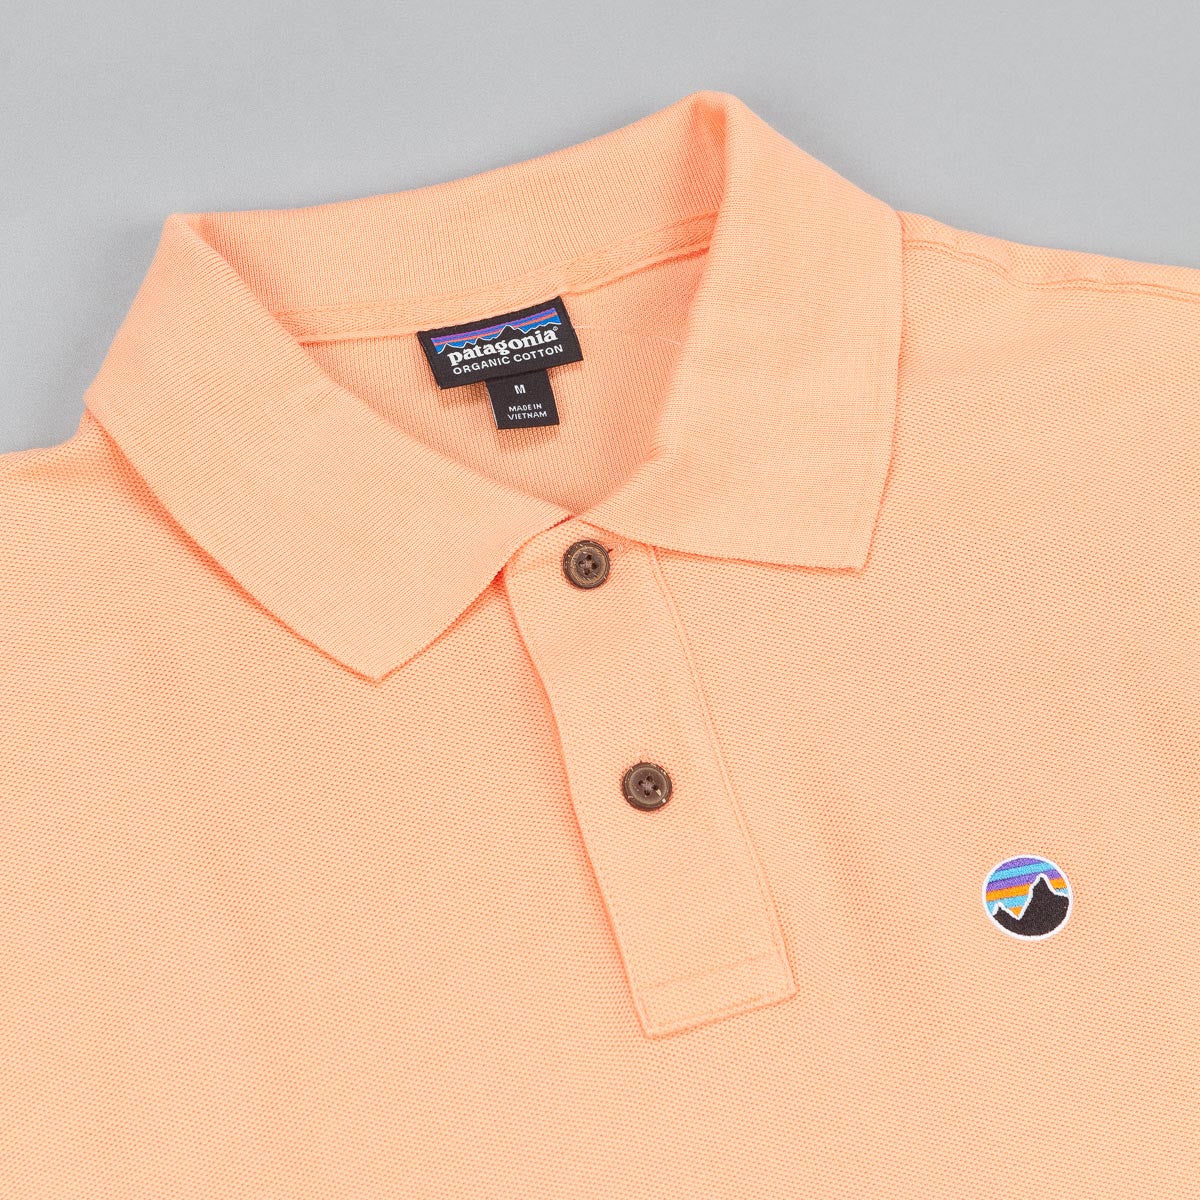 Patagonia Fitz Roy Emblem Polo Shirt - Lite Cusco Orange